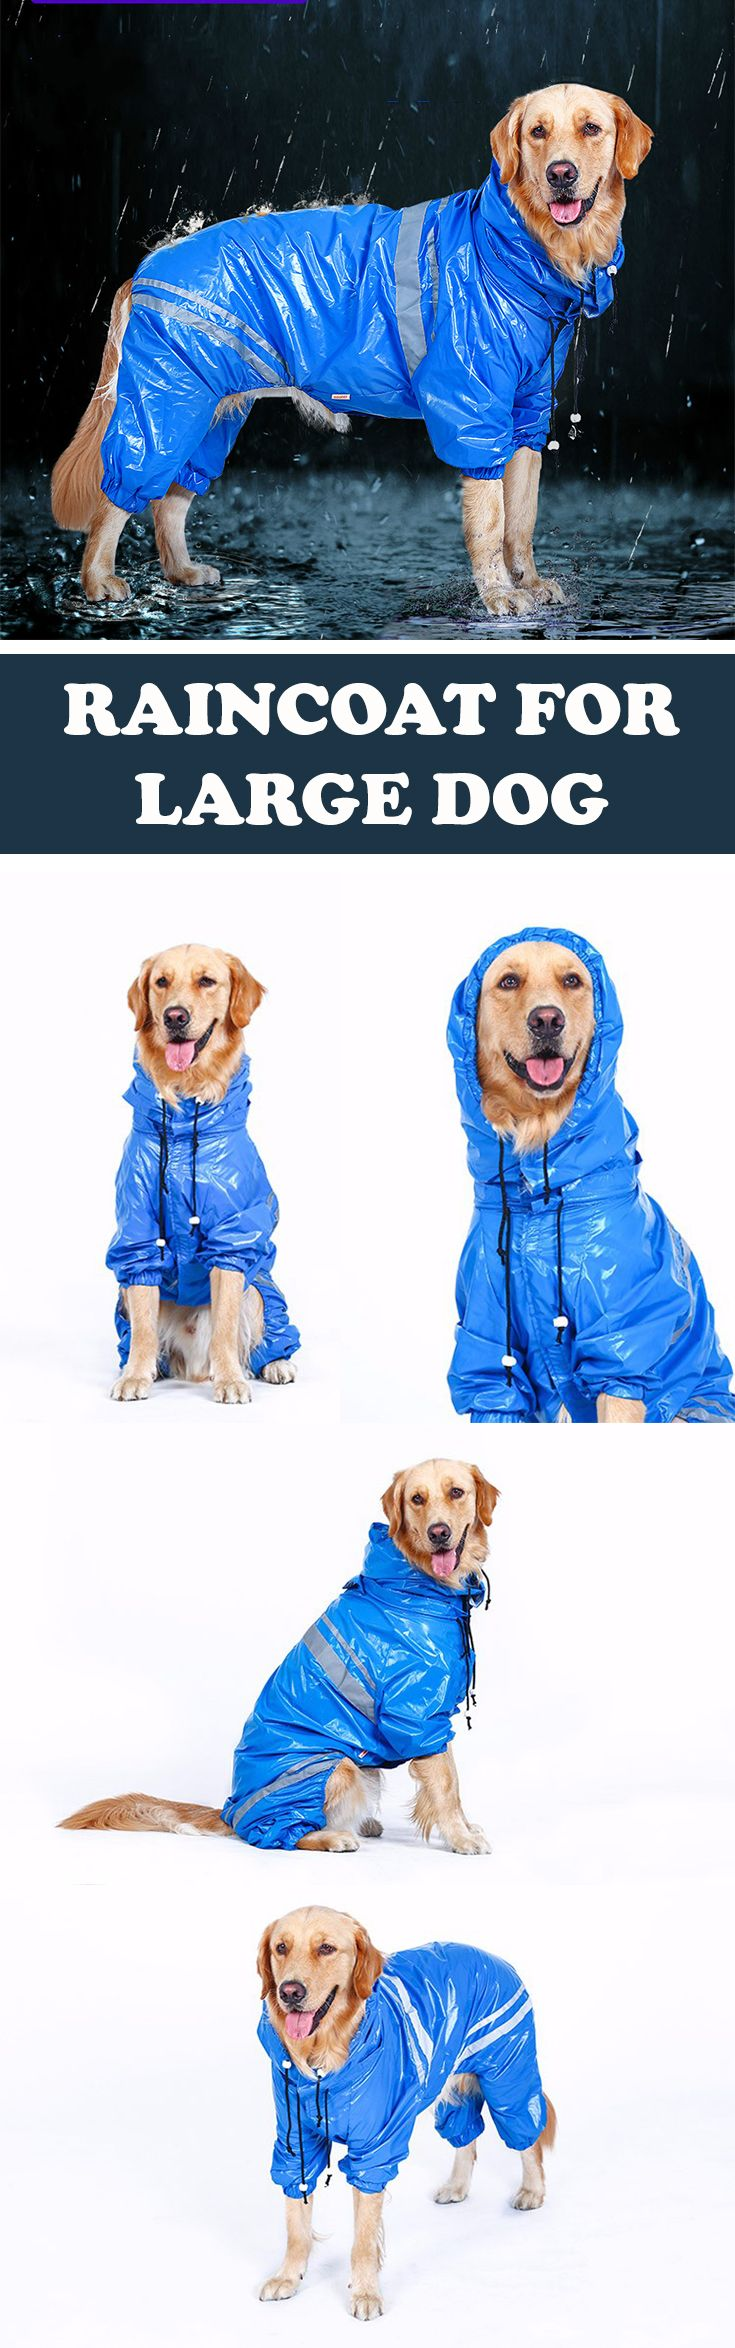 Waterproof raincoat for a large dog. Outdoor clothes for a big dog.